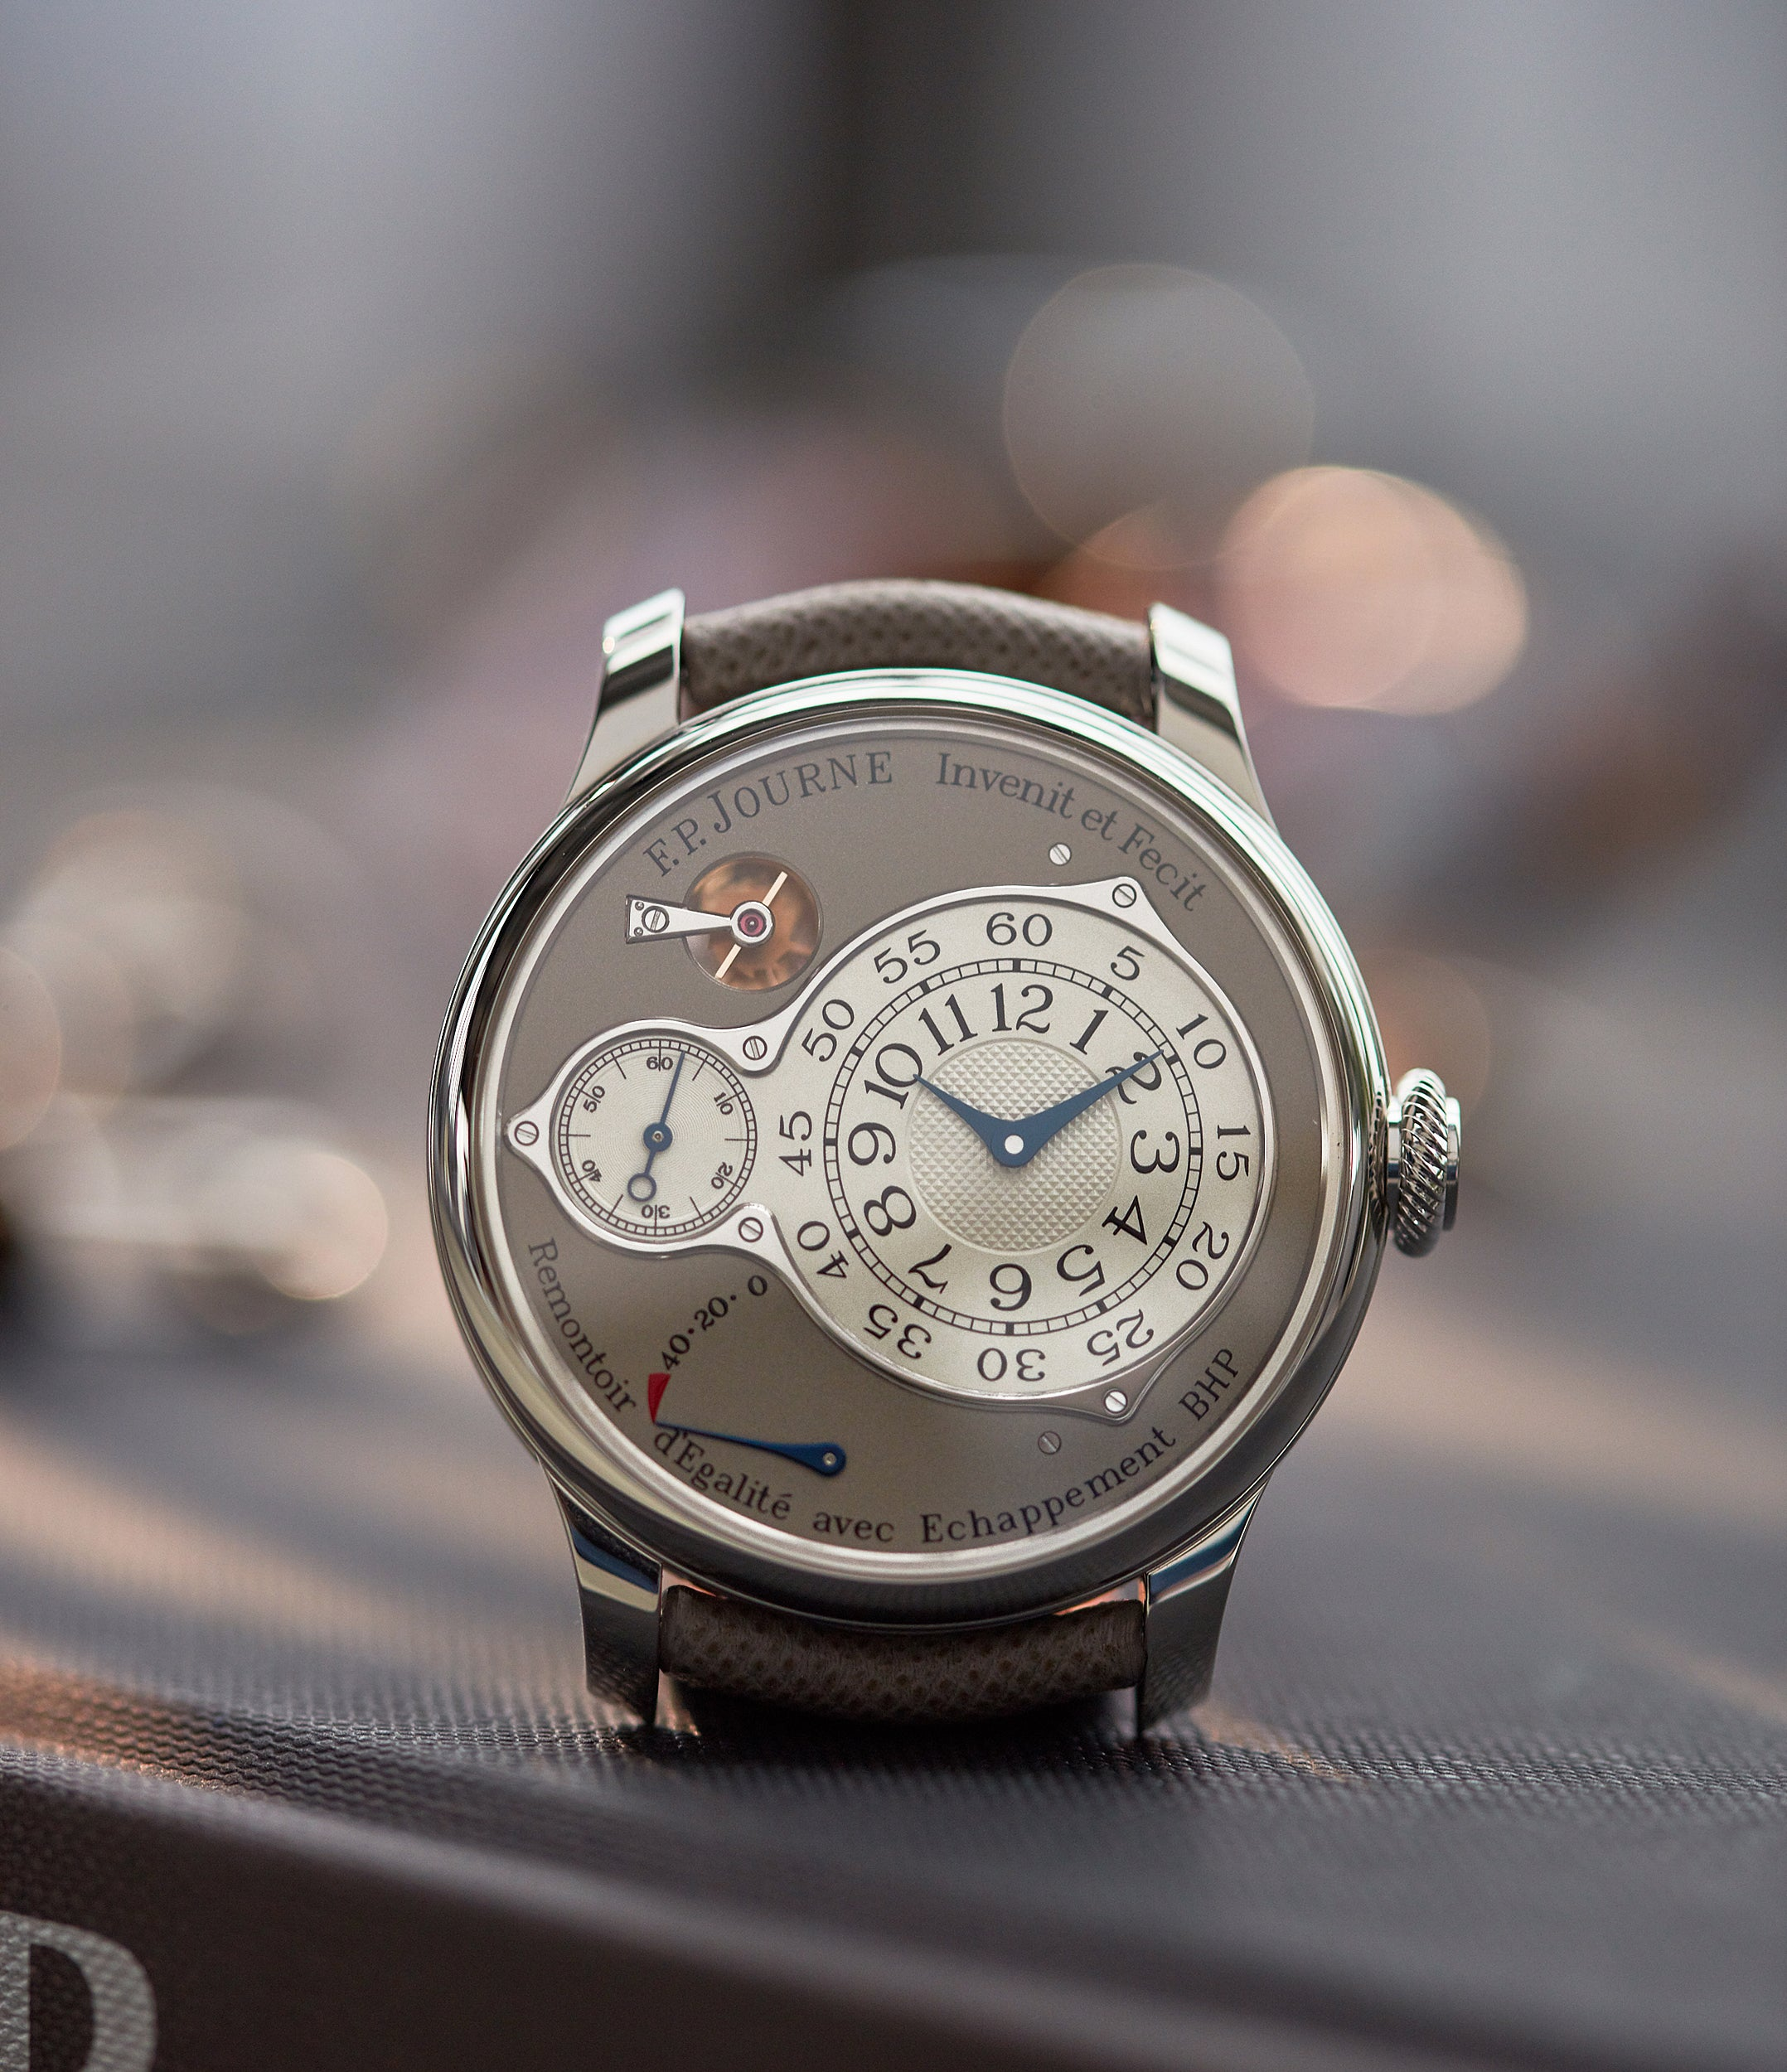 shop pre-owned F. P. Journe Chronometre Optimum 40mm platinum pre-owned dress watch for sale at A Collected Man London